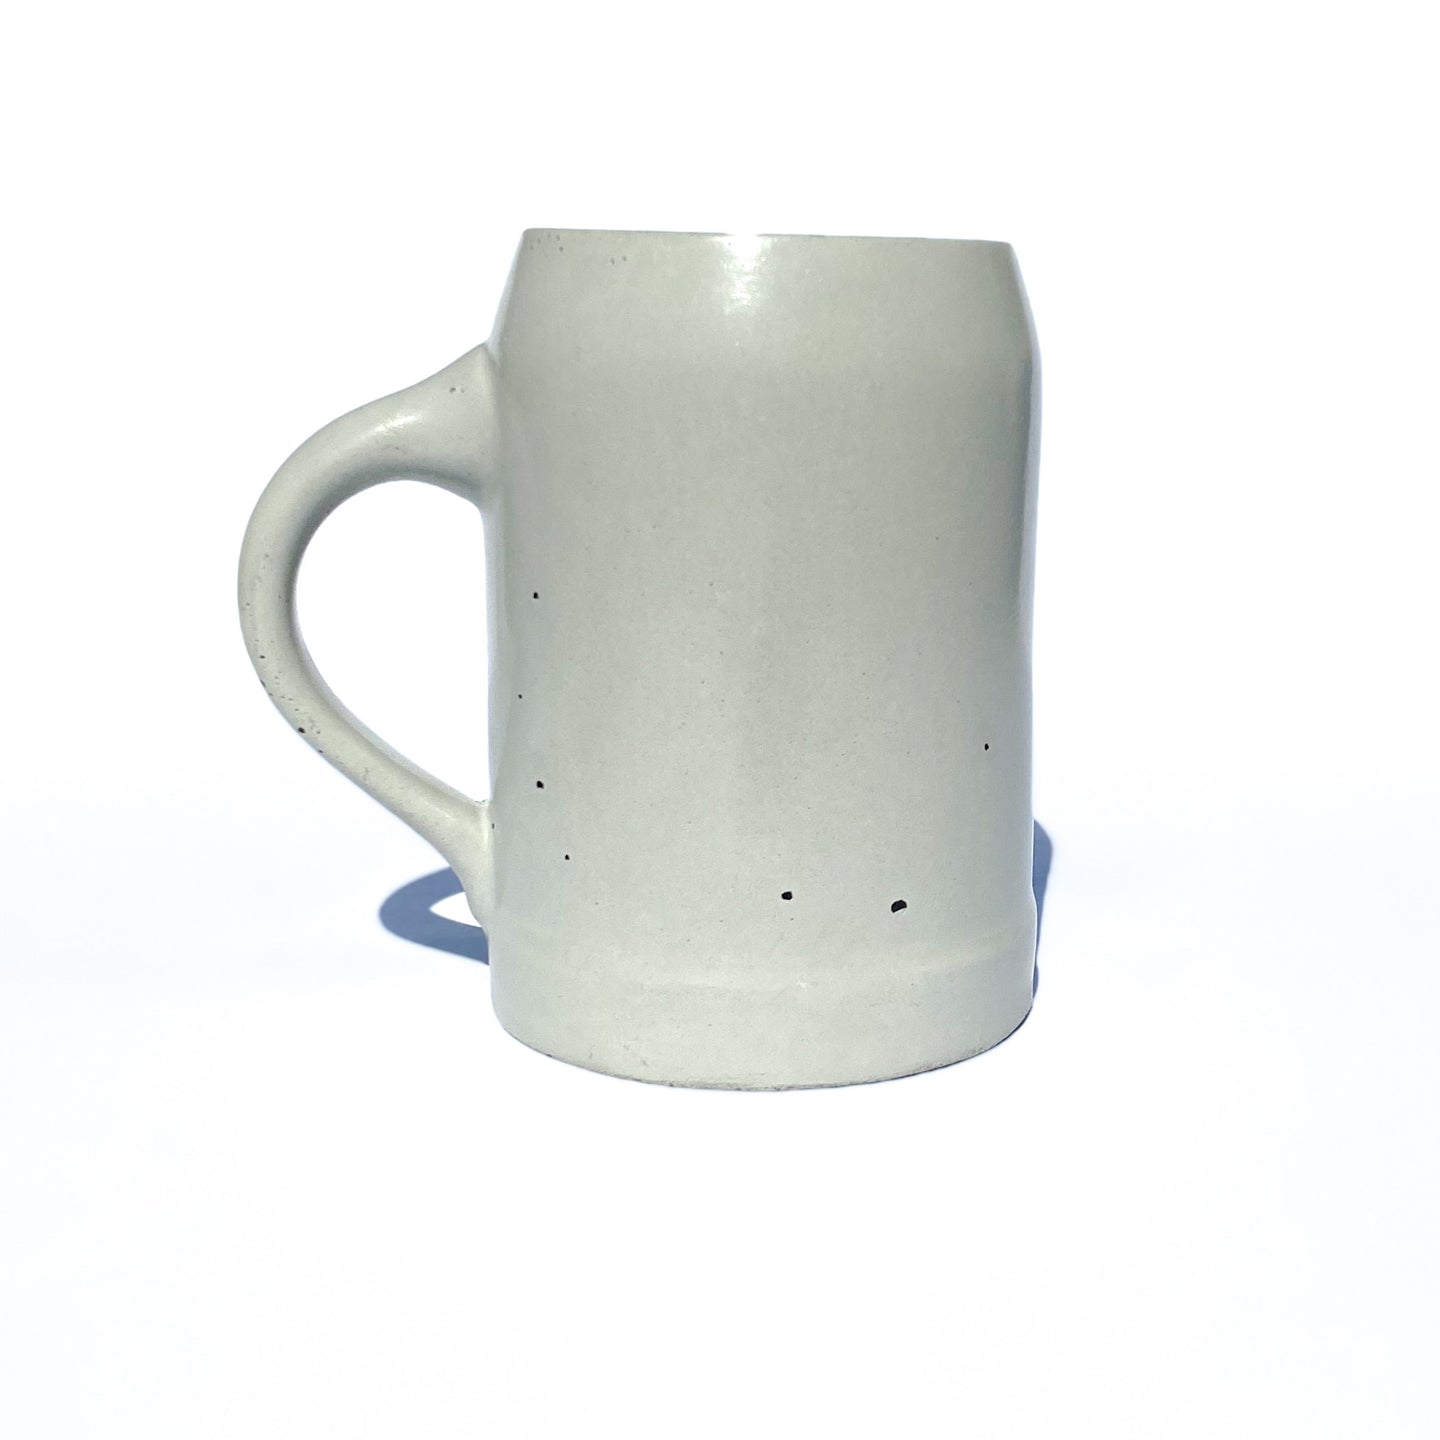 Concrete Beer Mug - 16oz